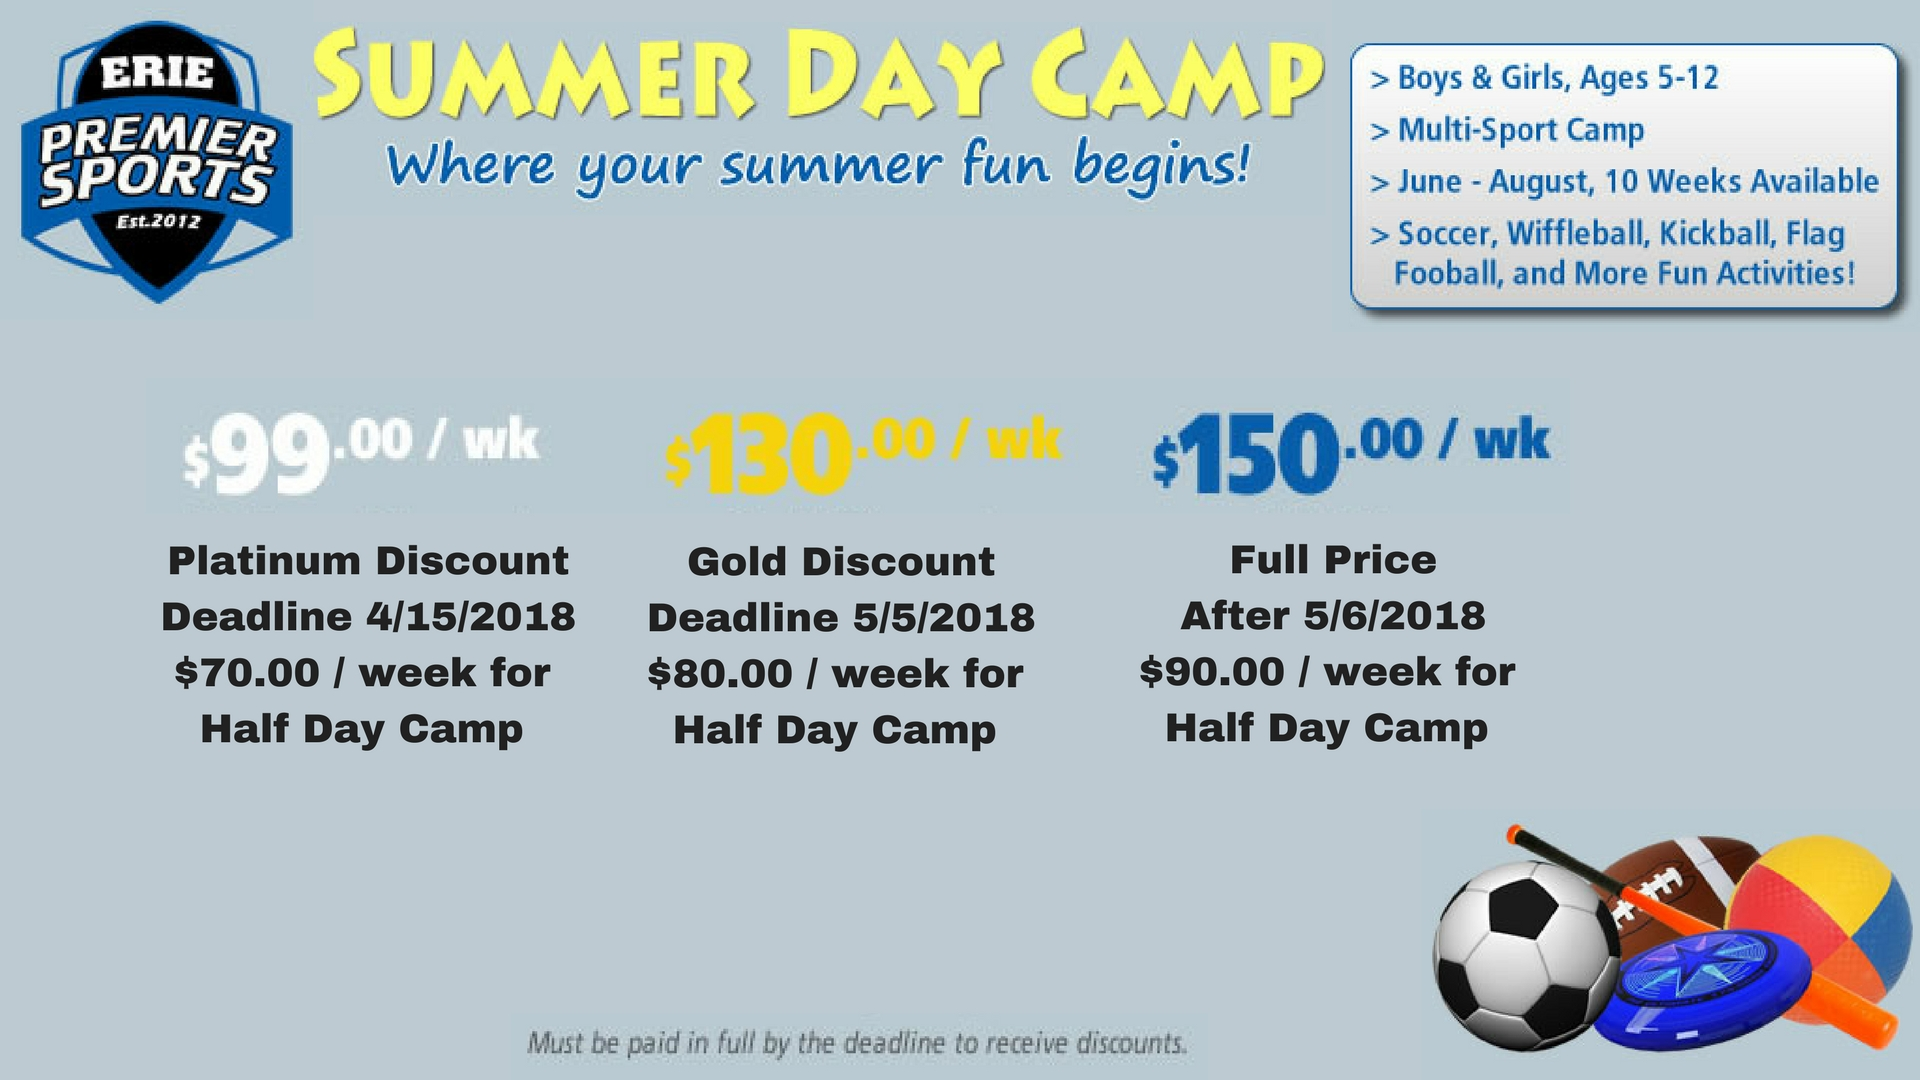 Erie Premier Sports Multi-Sports Summer Day Camp